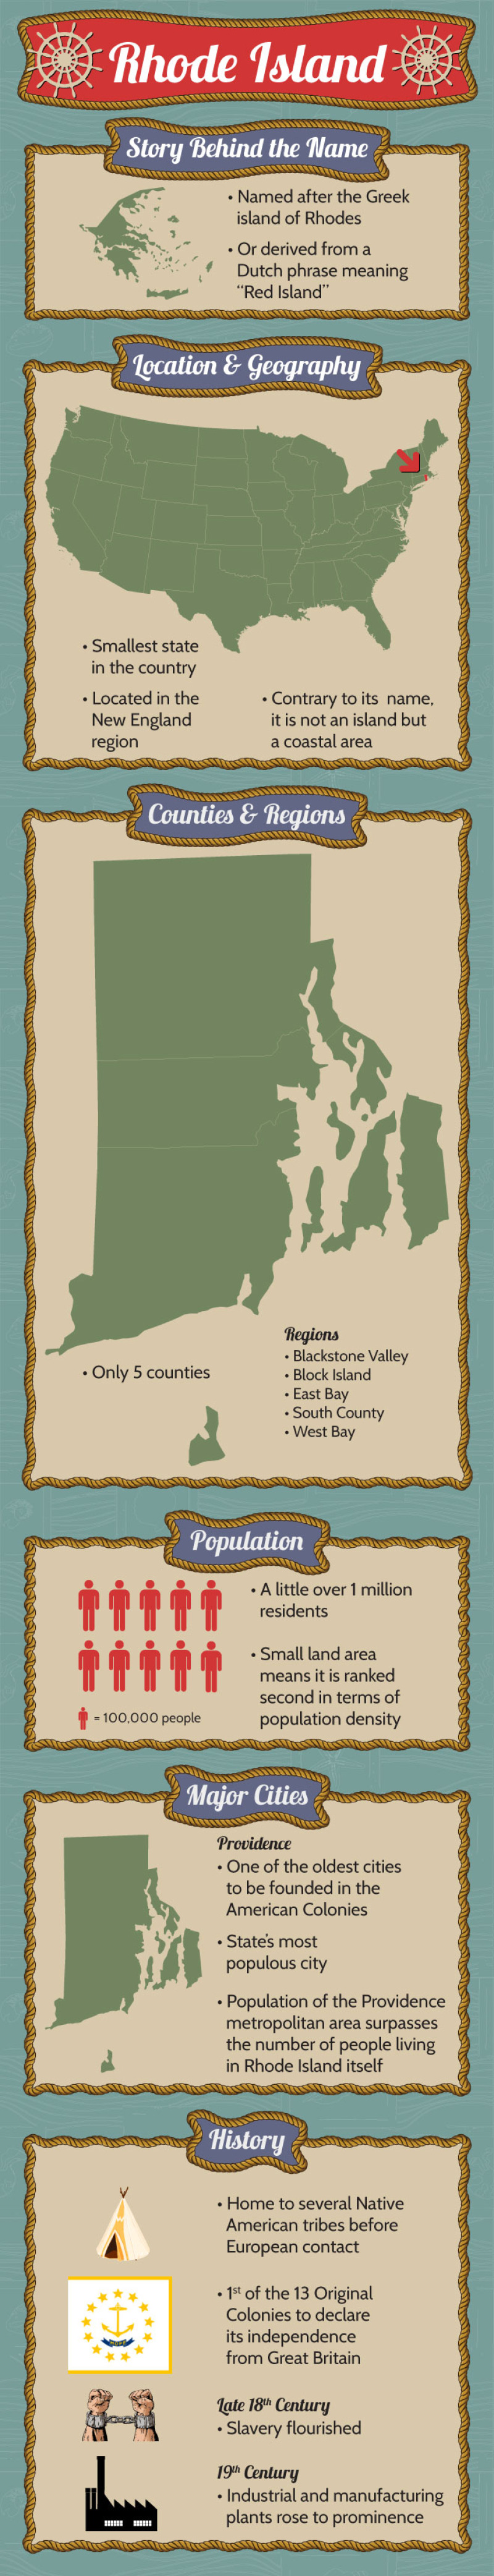 Infographic of Rhode Island factslived there 6